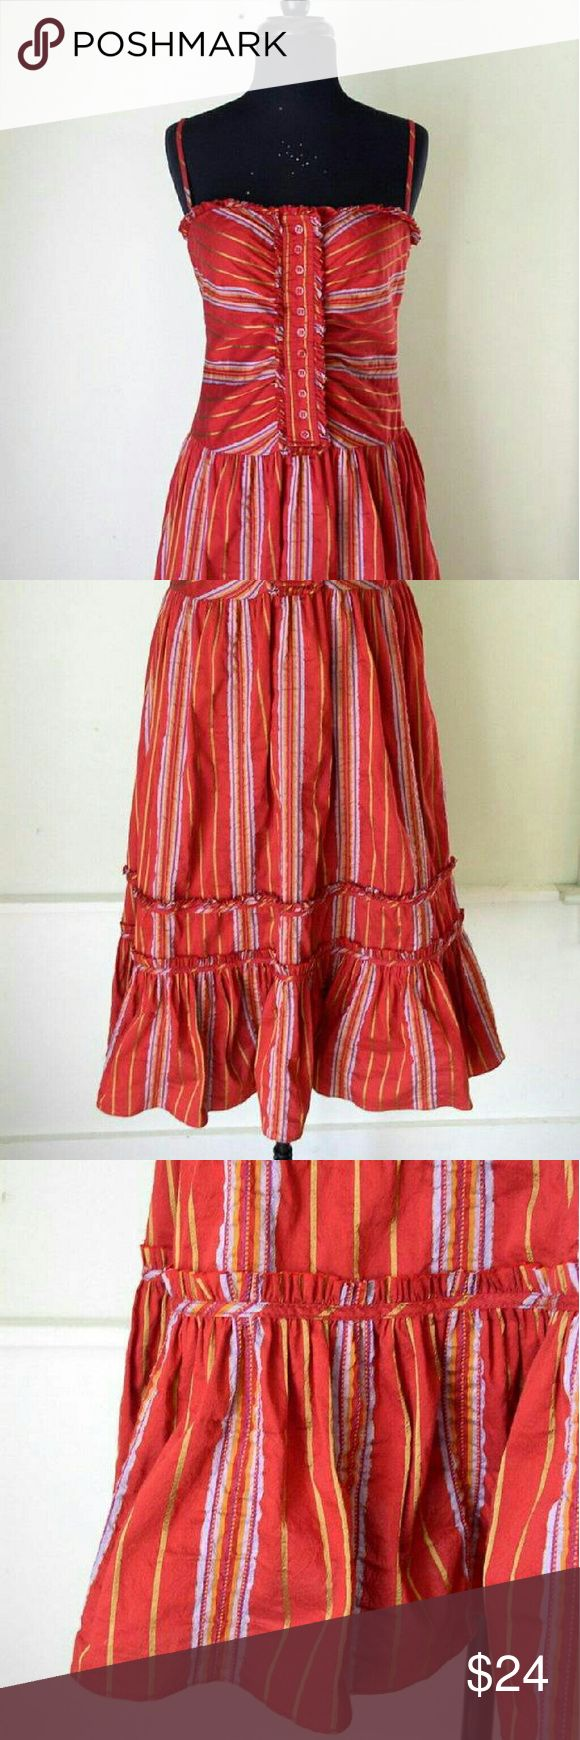 Zara Boho Drop Waist Red Metallic Festival Dress Zara boho dress in a luscious red cotton with stripes in  deep metallics like copper & gold. Drop waist, tiered boho midi skirt. Hidden side seam zipper. Cotton blend. Size Medium in excellent pre-owned condition Zara Dresses Midi